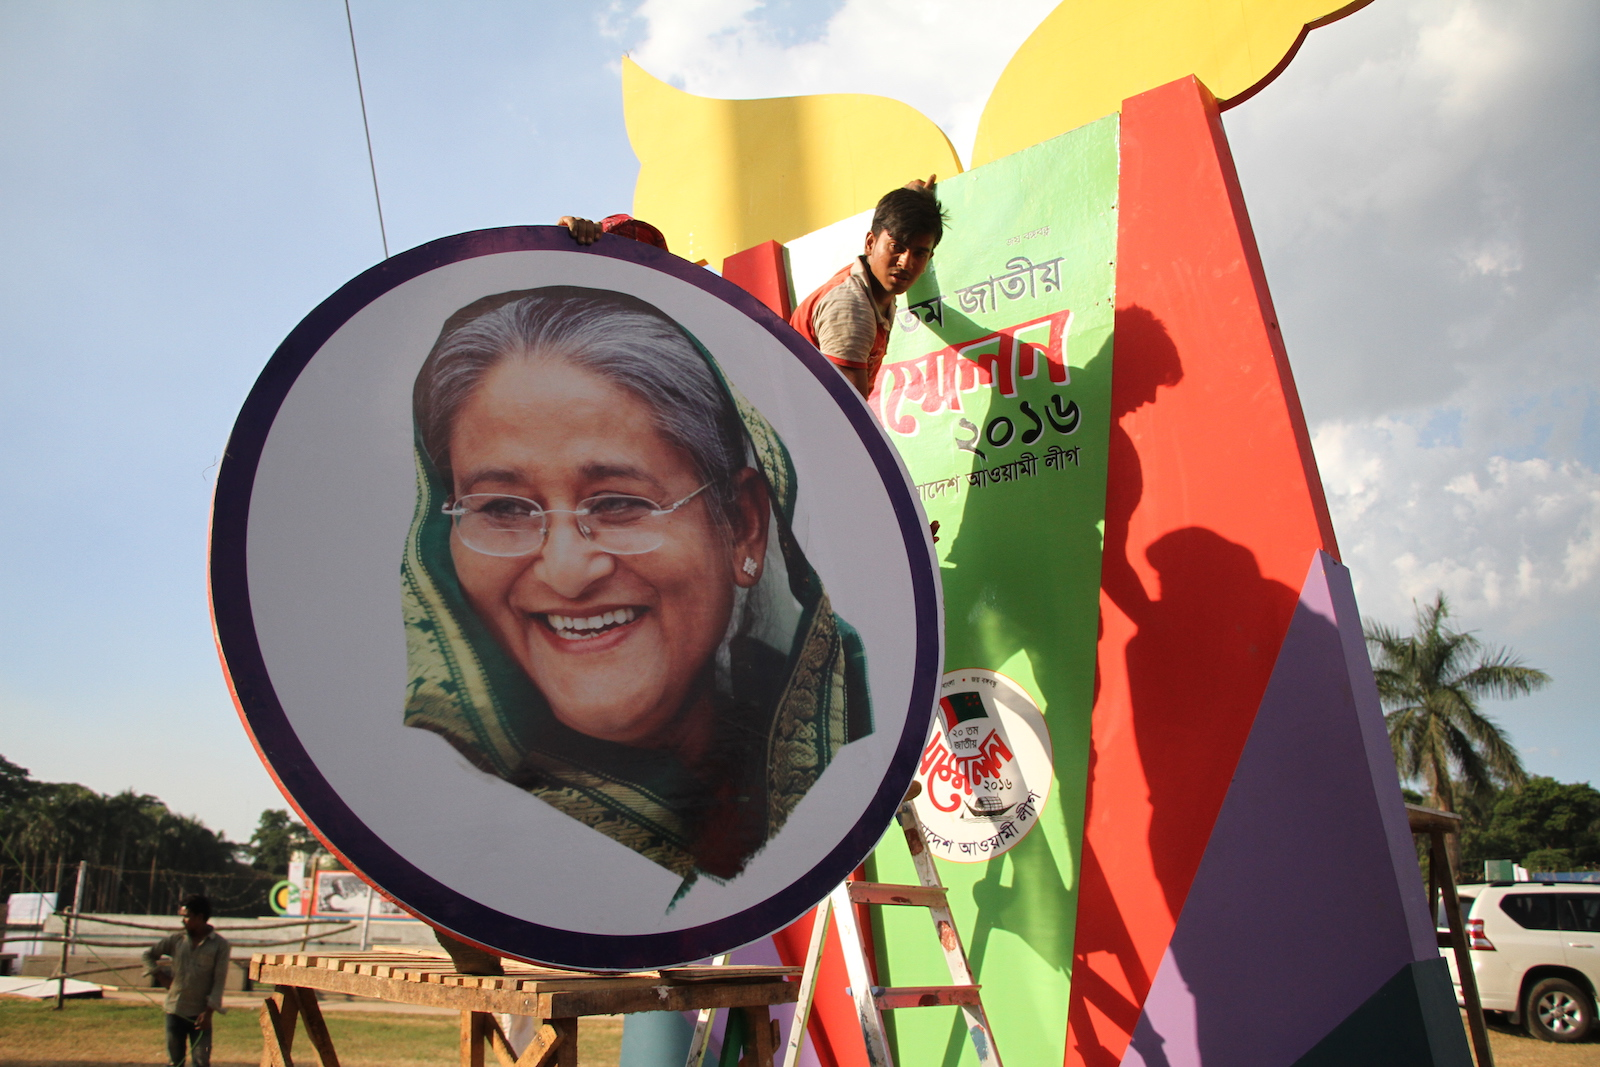 Bangladesh's ruling 'secular' Awami League strengthens ties with Islamist partiesMany of the Islamist parties are allying with PM Sheikh Hasina's center-left party, instead of their their traditional ally the BNP, ahead of elections